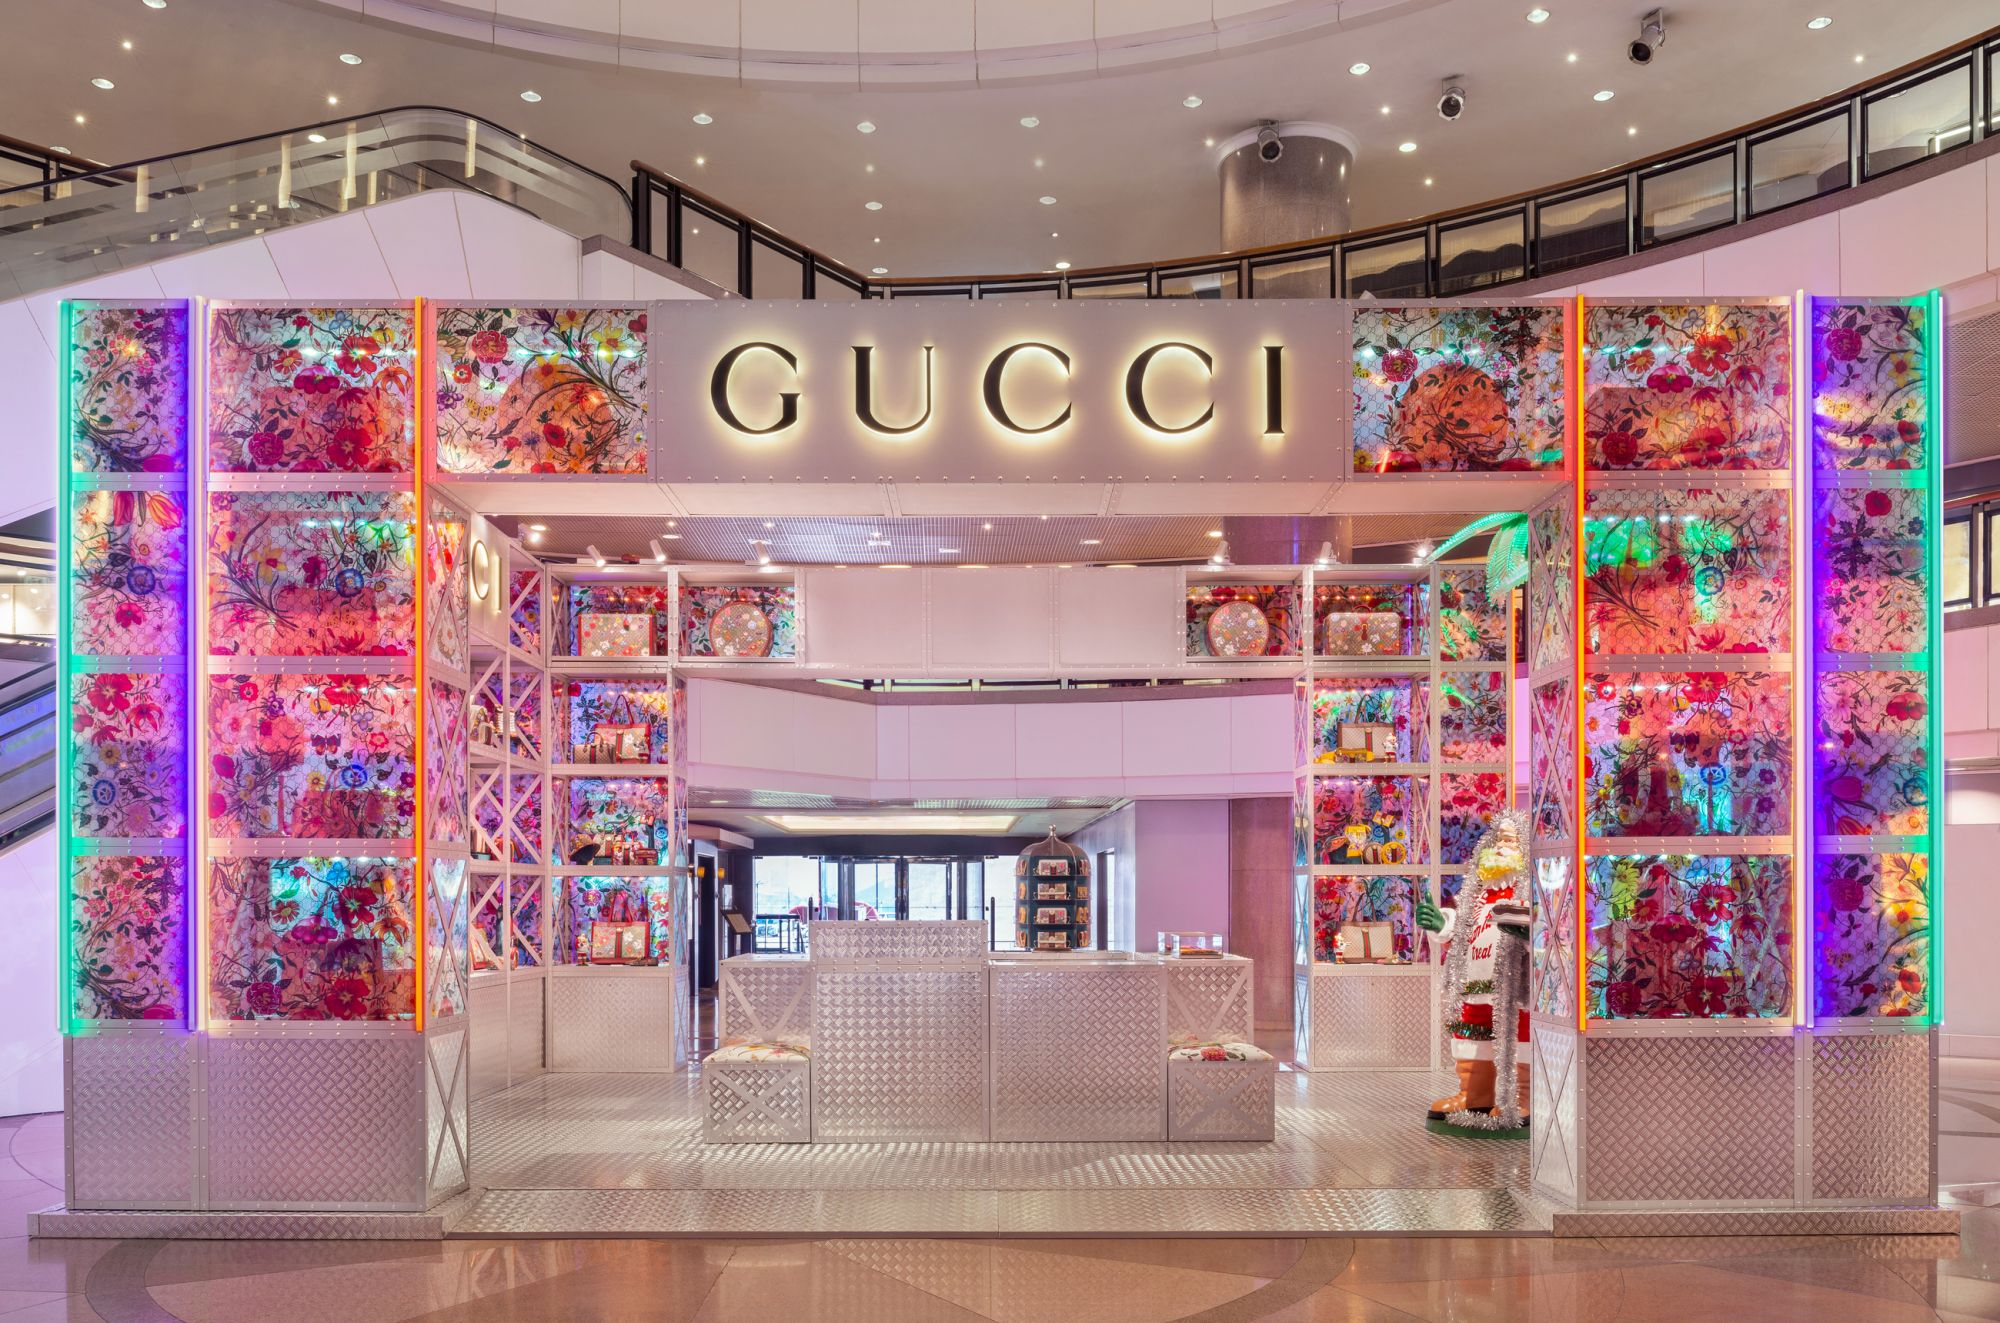 Gucci's New Pop-up Store Debuts At Harbour City